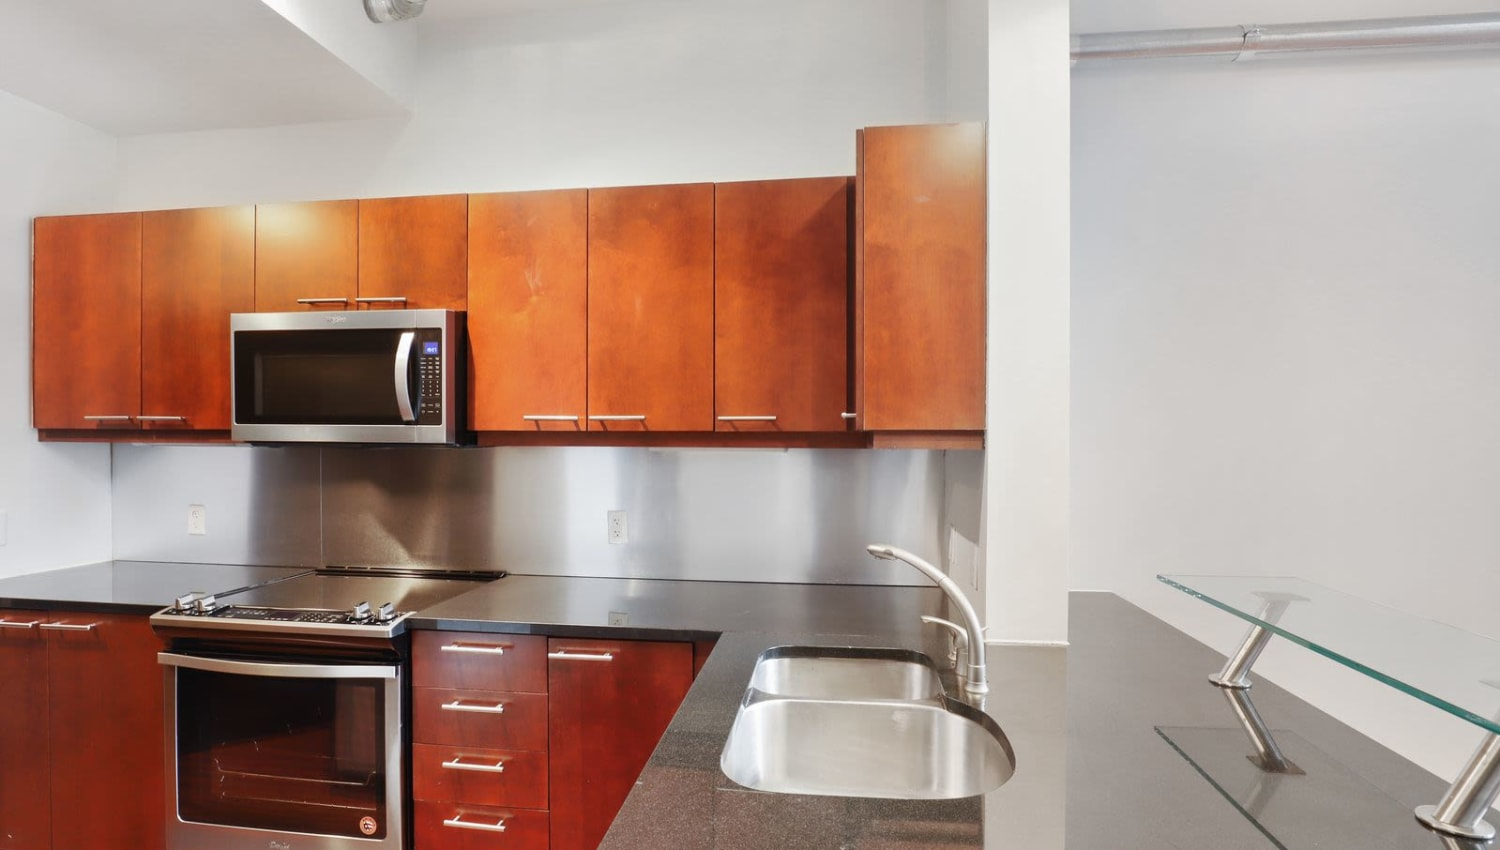 Kitchen with plenty of cabinet space at 17th Street Lofts in Atlanta, Georgia